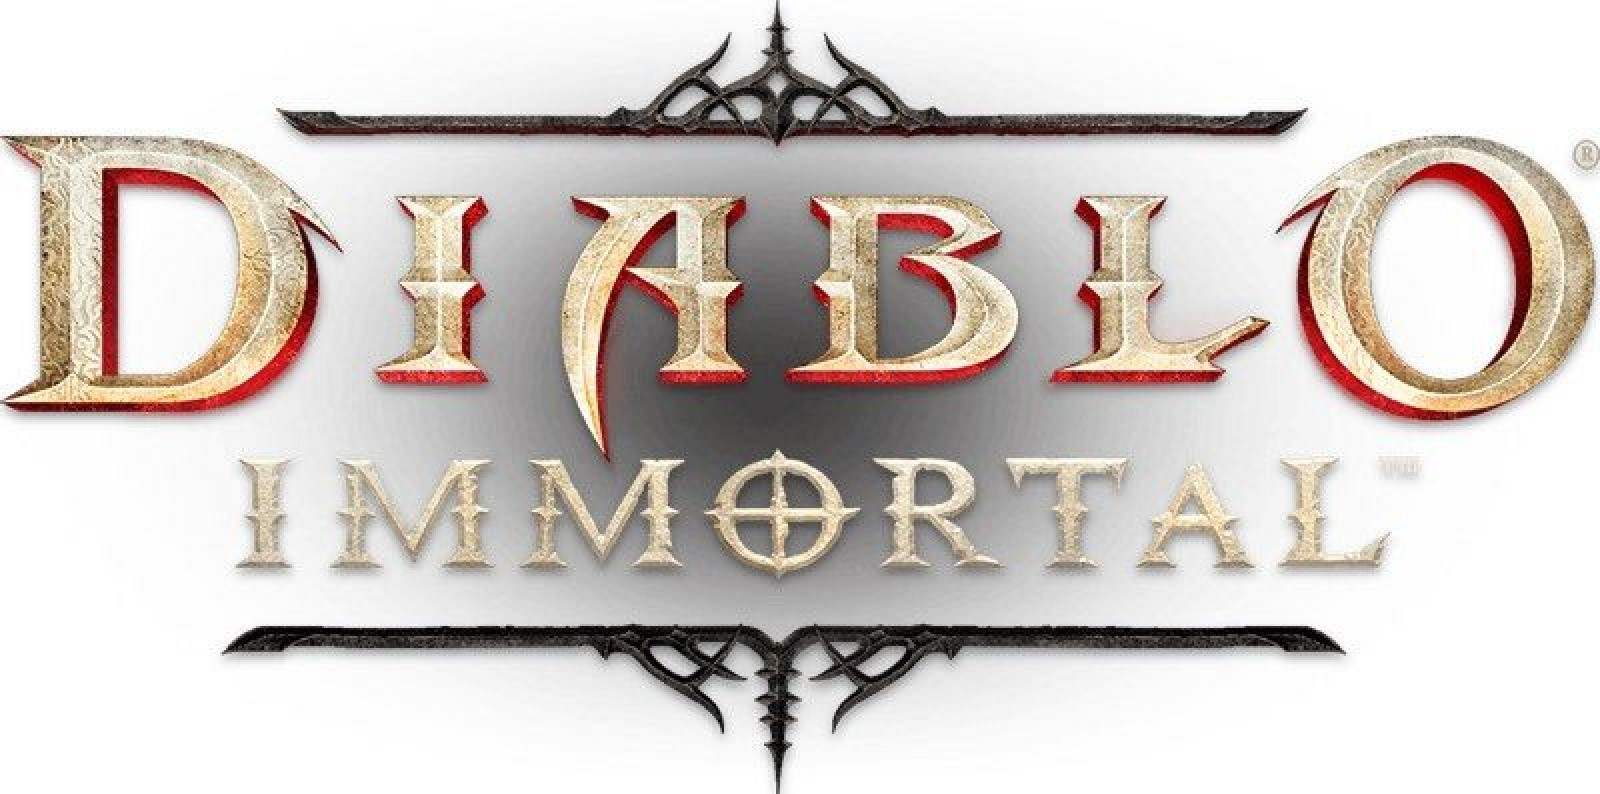 https://xgm.guru/p/world-of-insanity/diablo-immortal-blizzcon-2k18